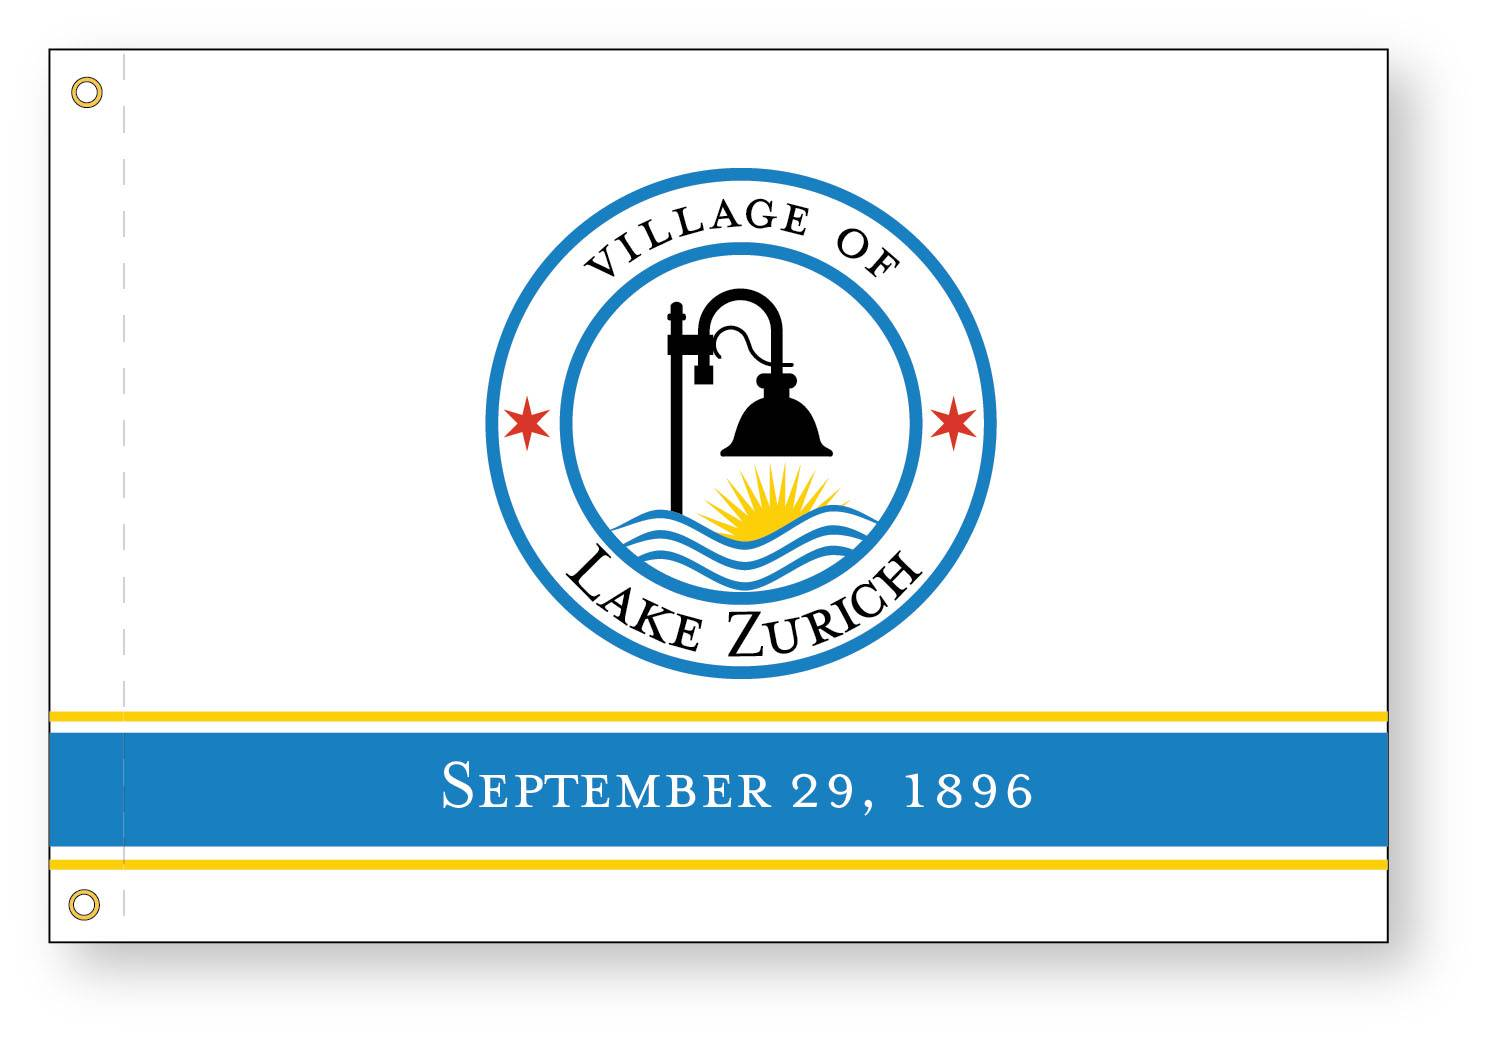 This is the new Lake Zurich village government flag approved by elected officials this week. It'll fly at all municipal buildings.